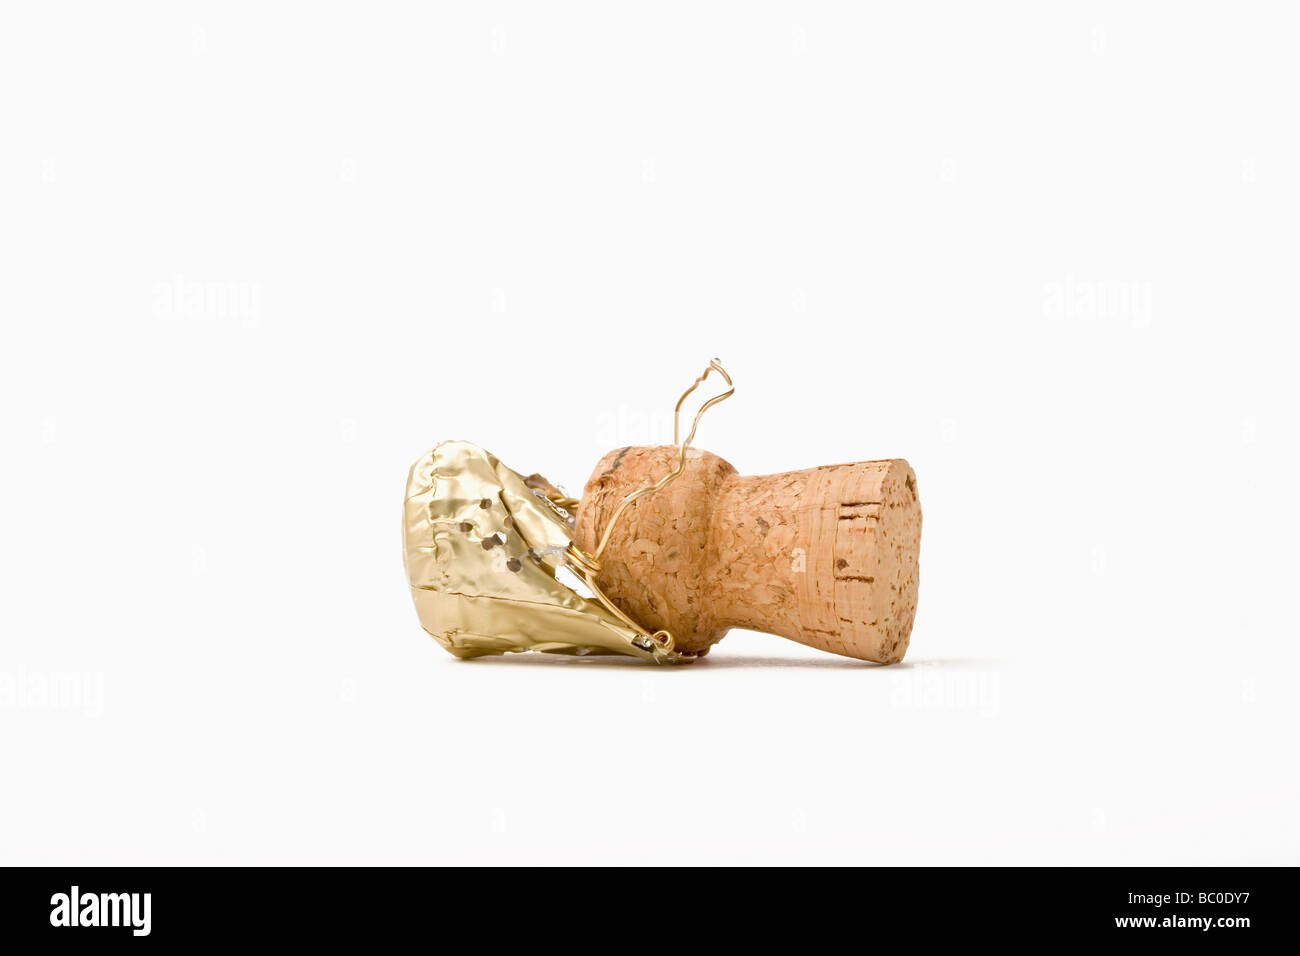 close up of a champagne cork isolated on white background - Stock Image